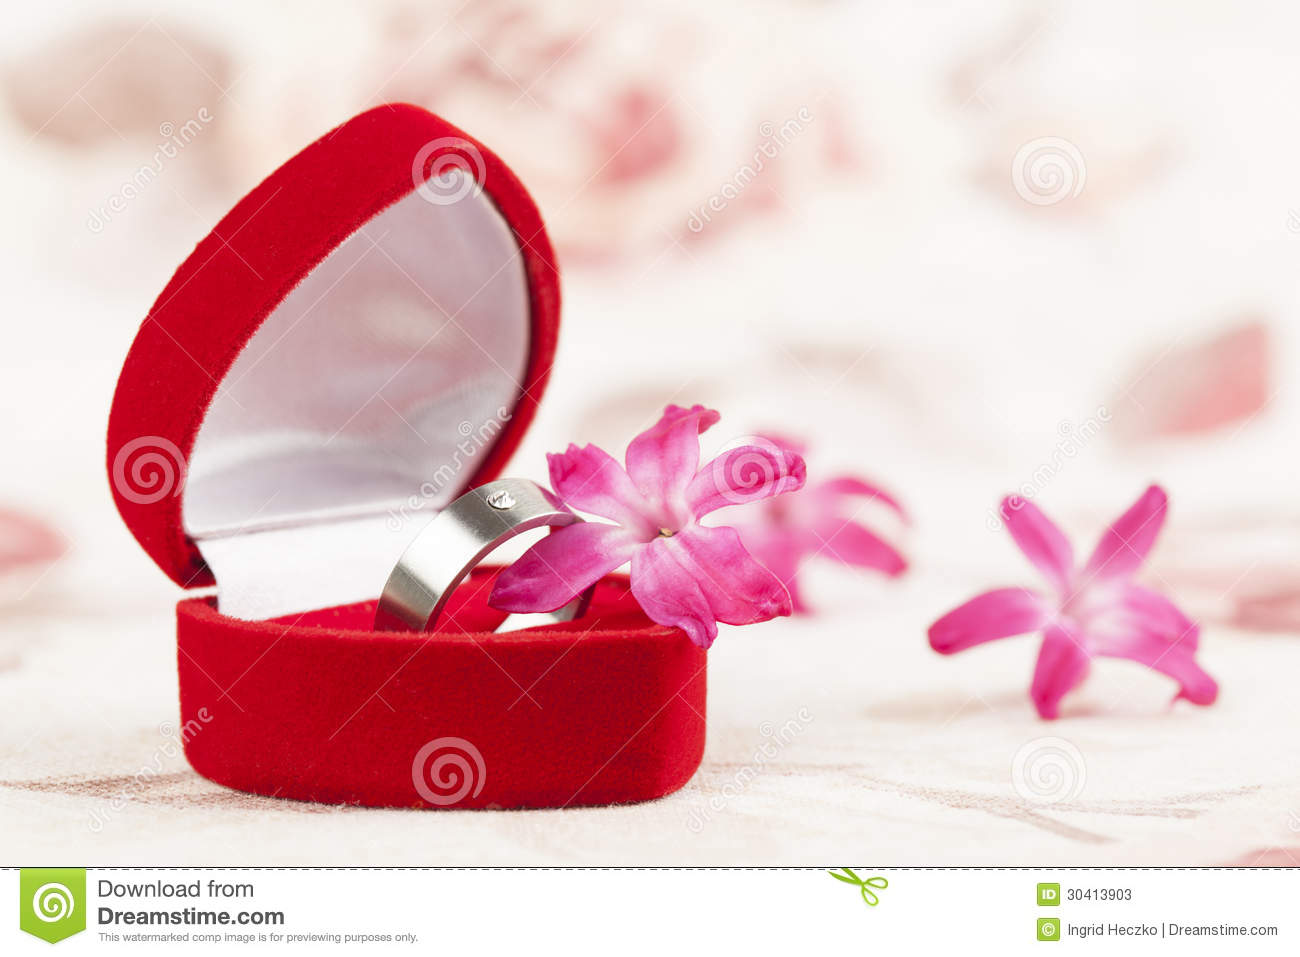 Titanium engagement ring stock photos image 30413903 for Heart shaped engagement ring box